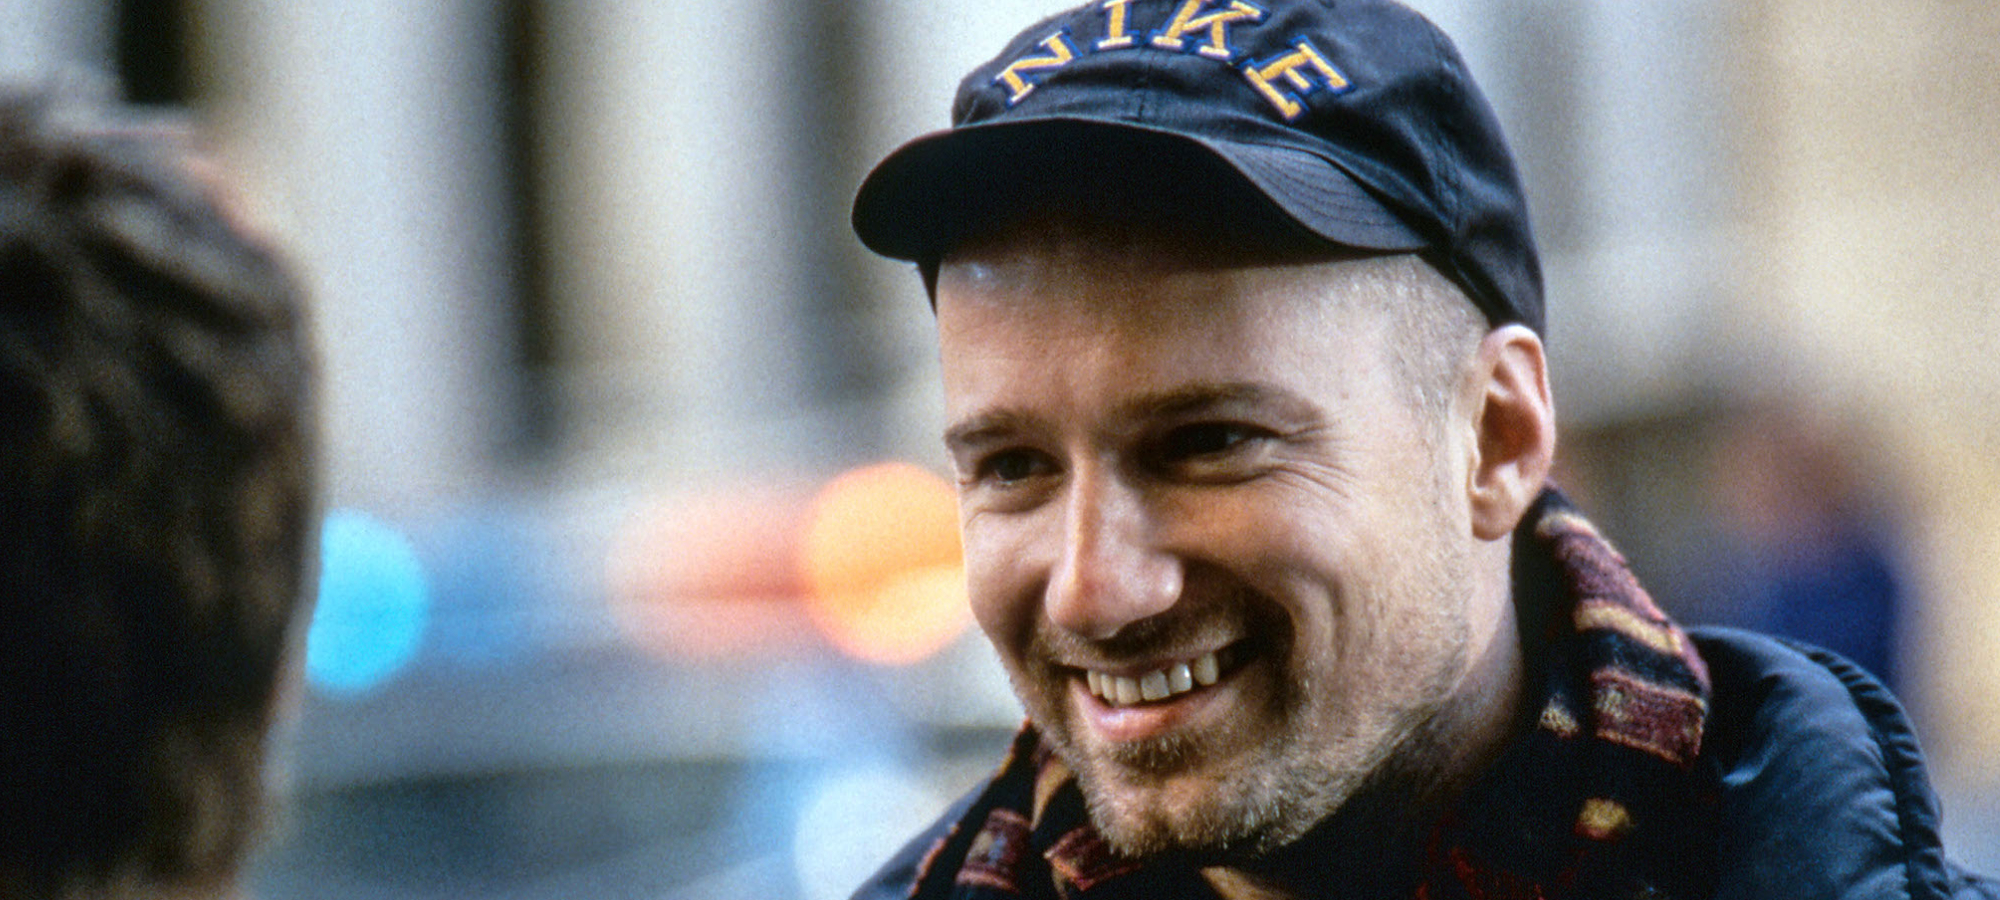 David Fincher on the set of